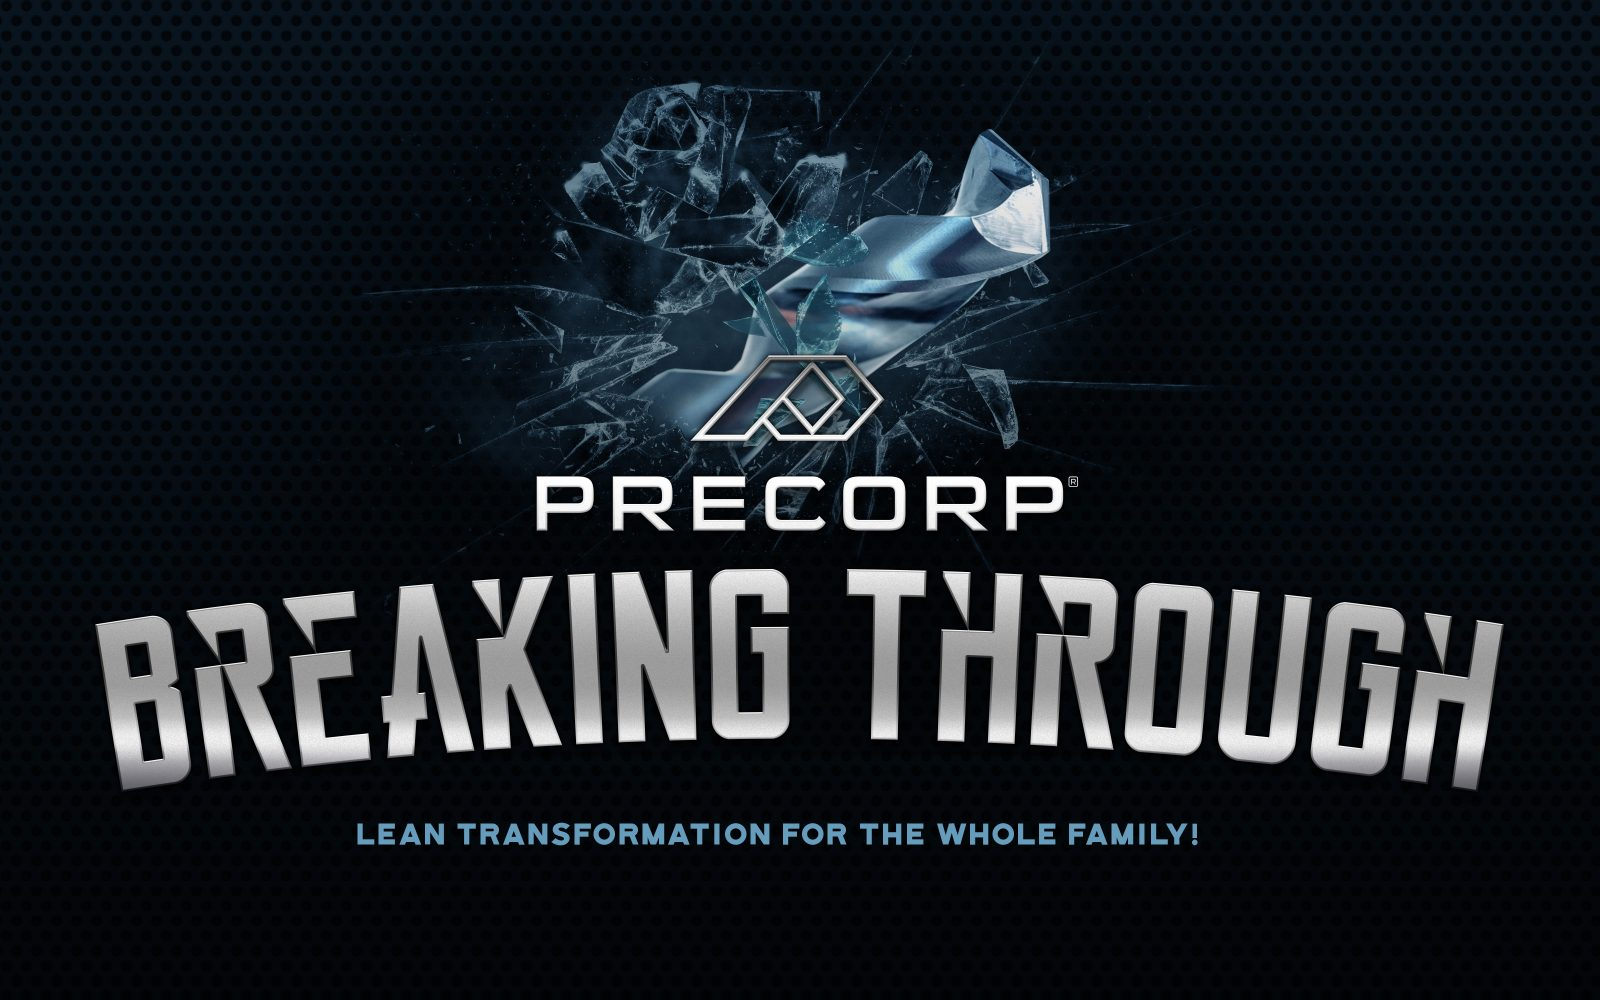 Breaking Through Promotion